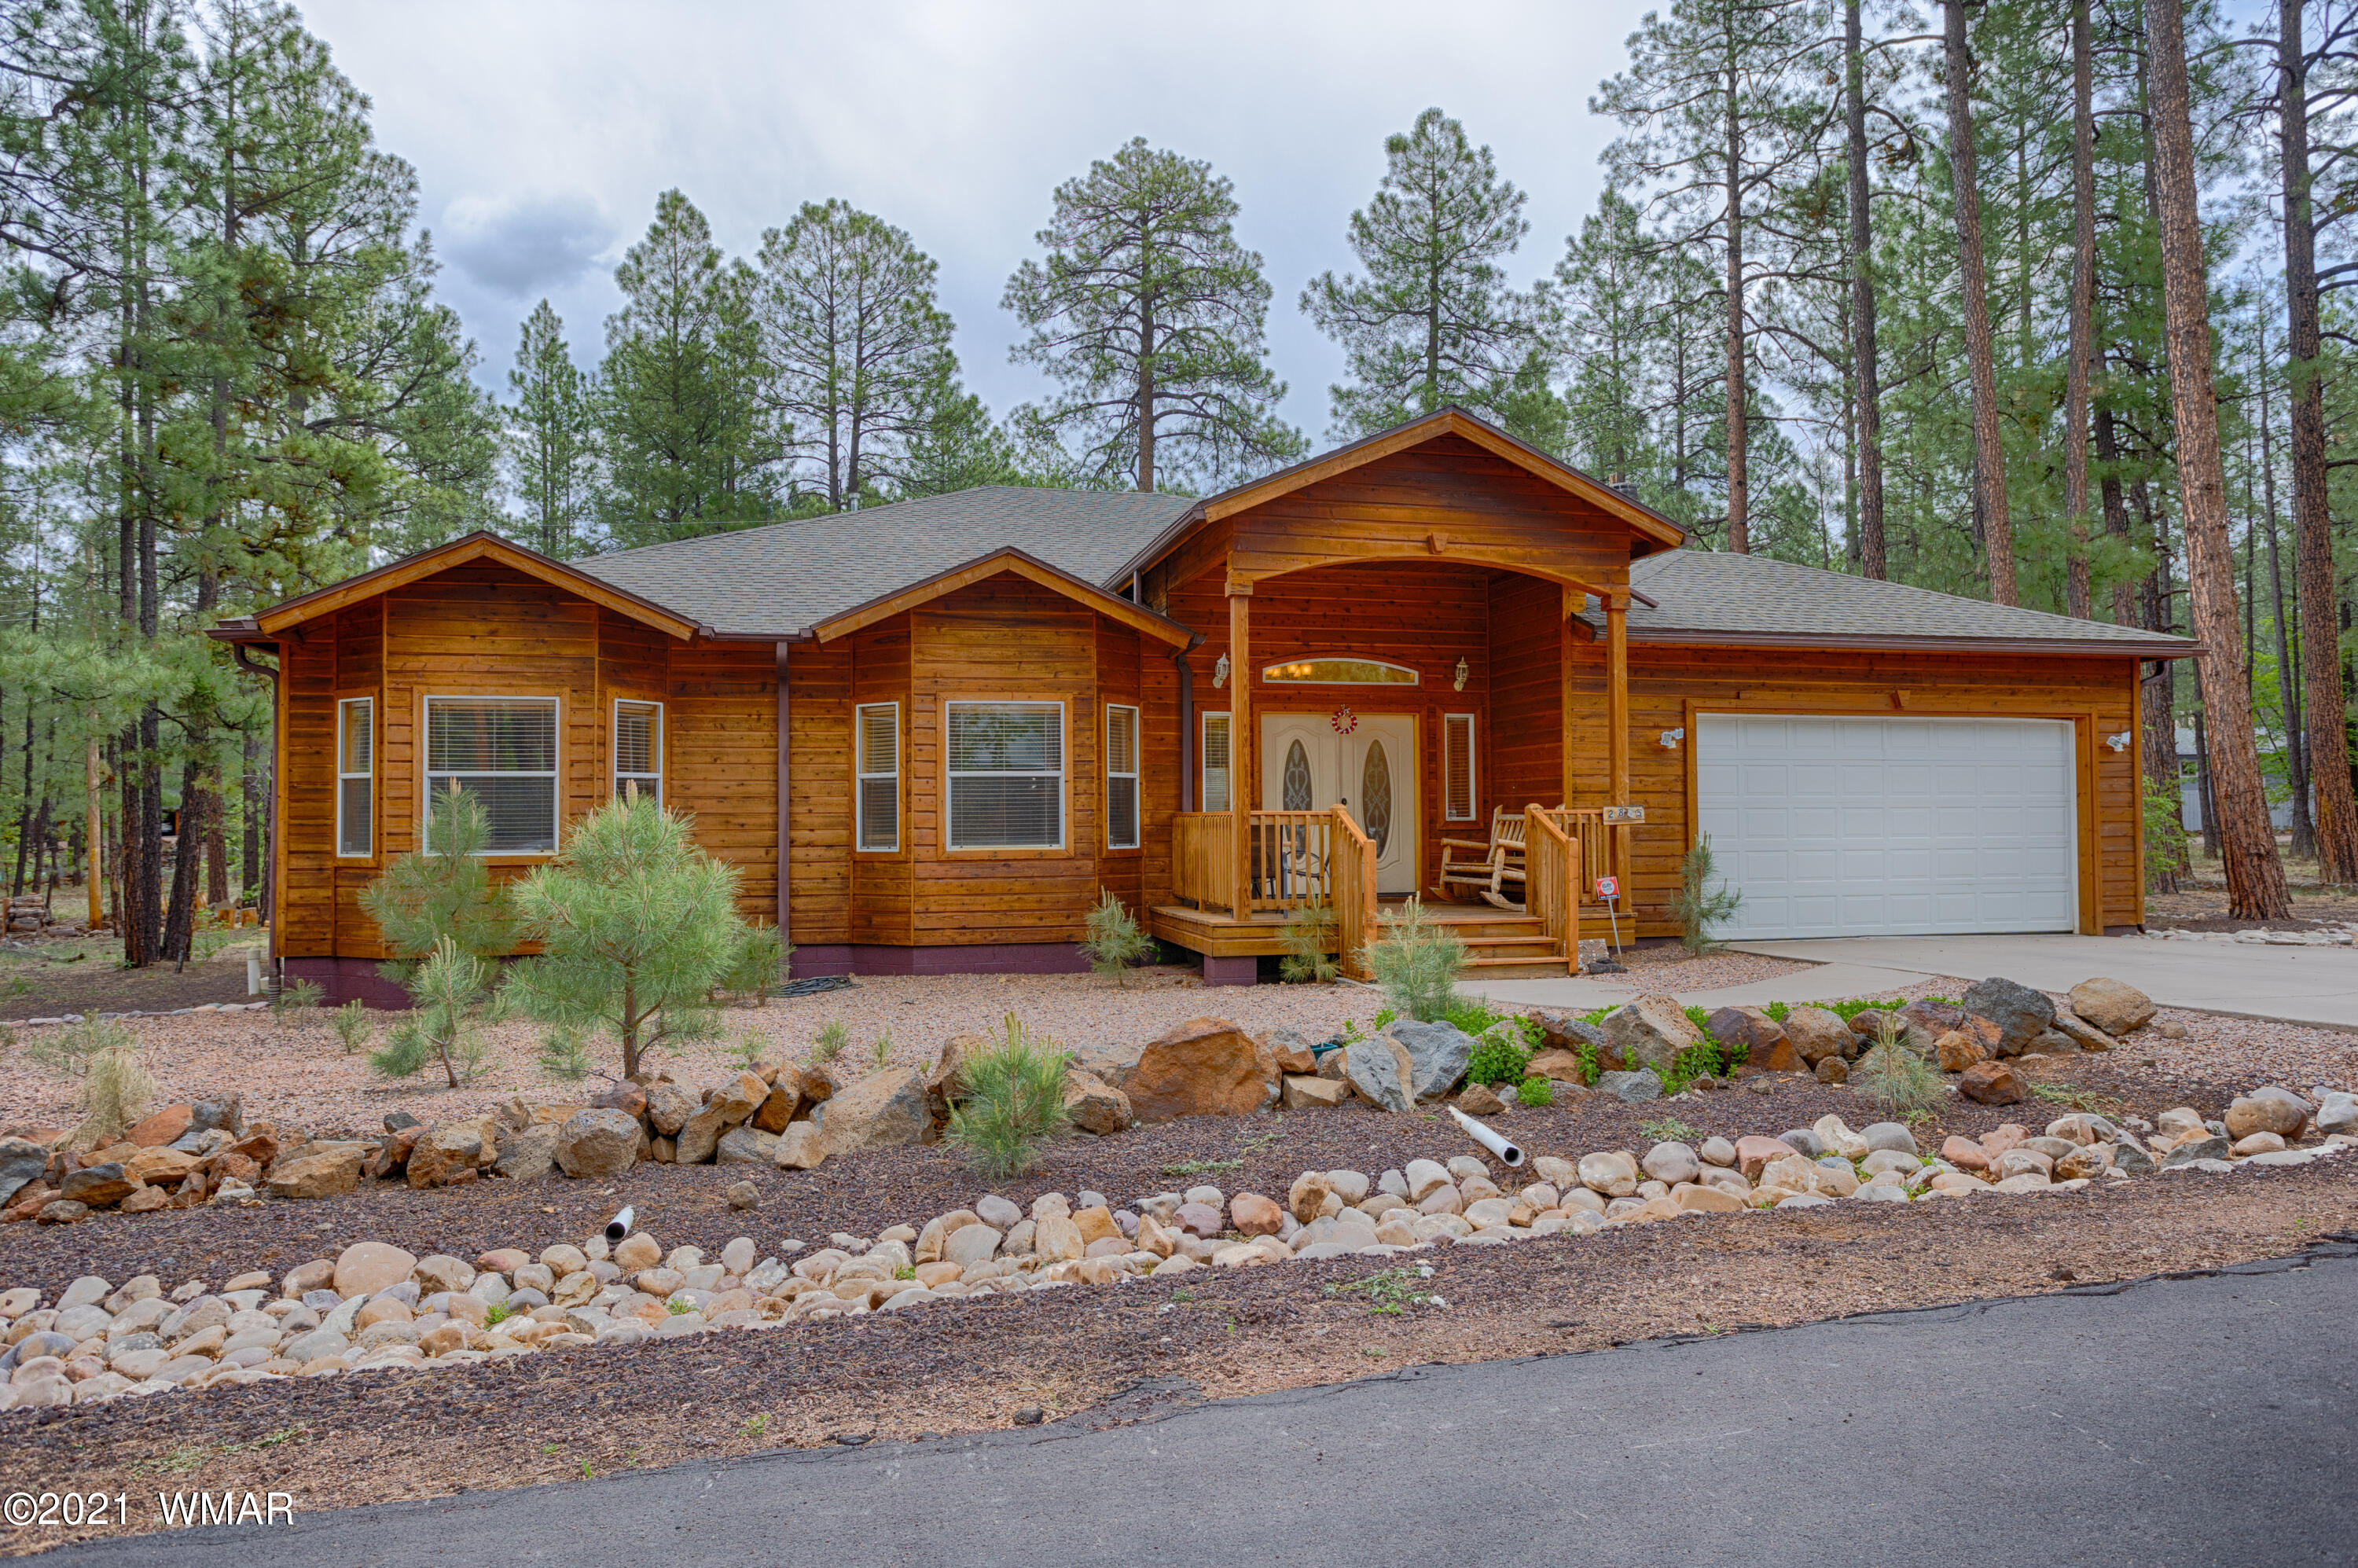 BiG PRICE REDUCTION  of $77,000 until end of day Sunday August 1st.  Cedar sided home in Pinetop Lakes. 4 bedroom, 3 bath in a prime location. Great room with vaulted ceilings and a river rock fireplace. Breakfast bar, eat in kitchen and a formal dining room makes for excellent entertaining! Custom maple cabinetry throughout. Wonderful decks to enjoy the cool mountain air. This home has recreation center privledge, part of the HOA fee of $335 per year  Close to National Forest and many trails. Home is occupied but  can be easily shown.